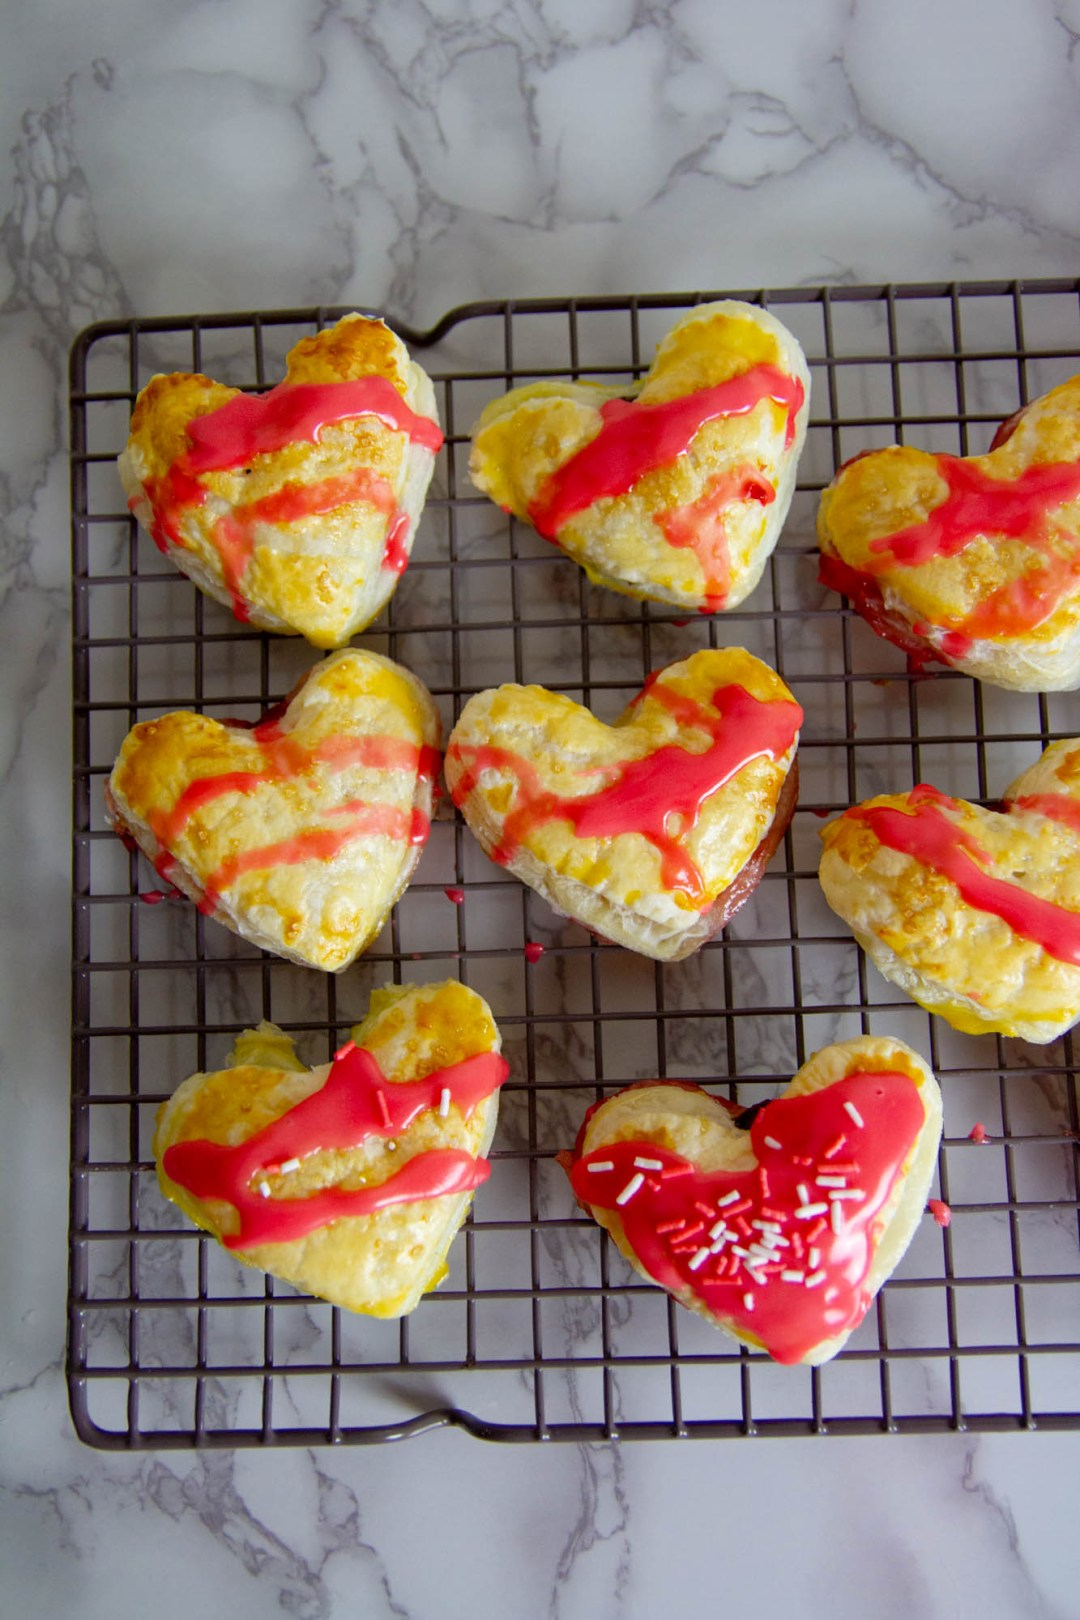 These Heart-Shaped Strawberry Nutella Hand Pies are exactly what you need for your special someone this Valentine's Day.